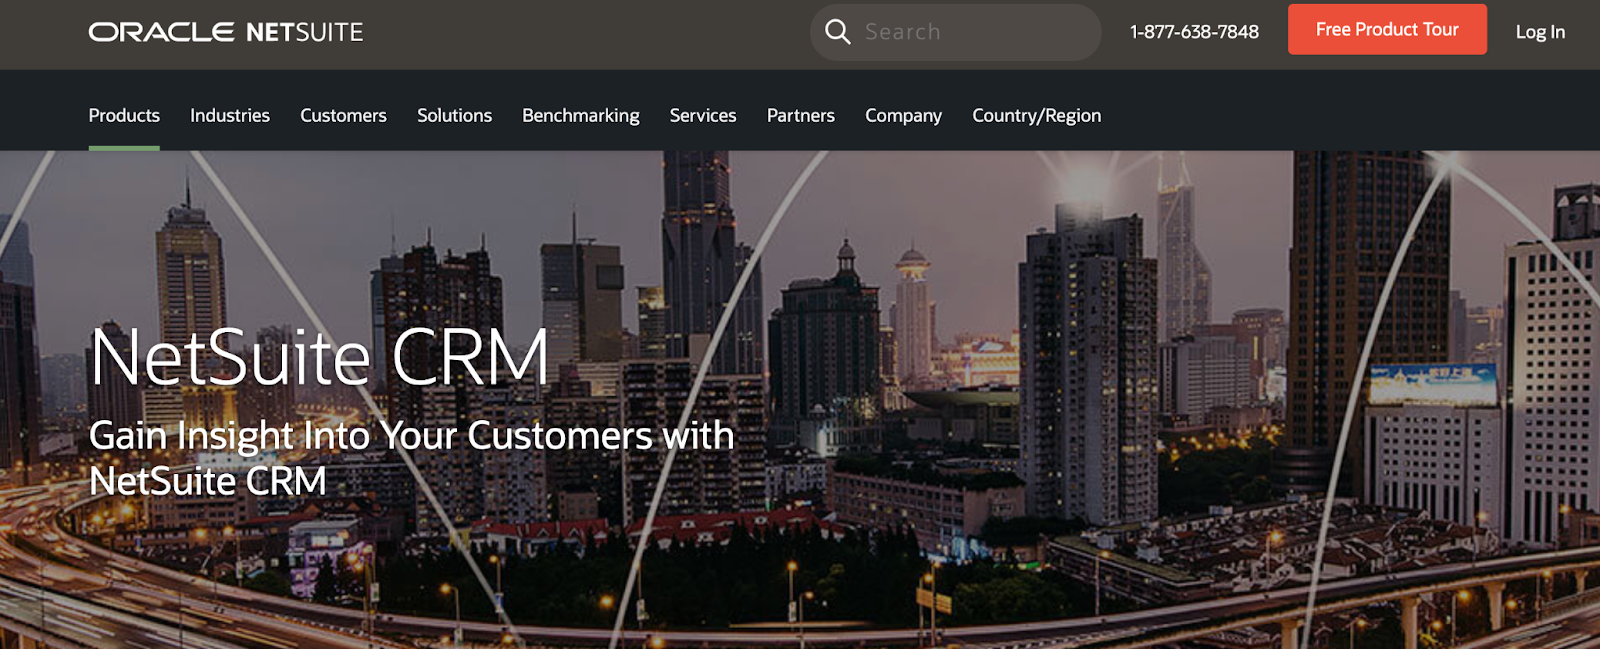 client relationship management software netsuite crm by oracle